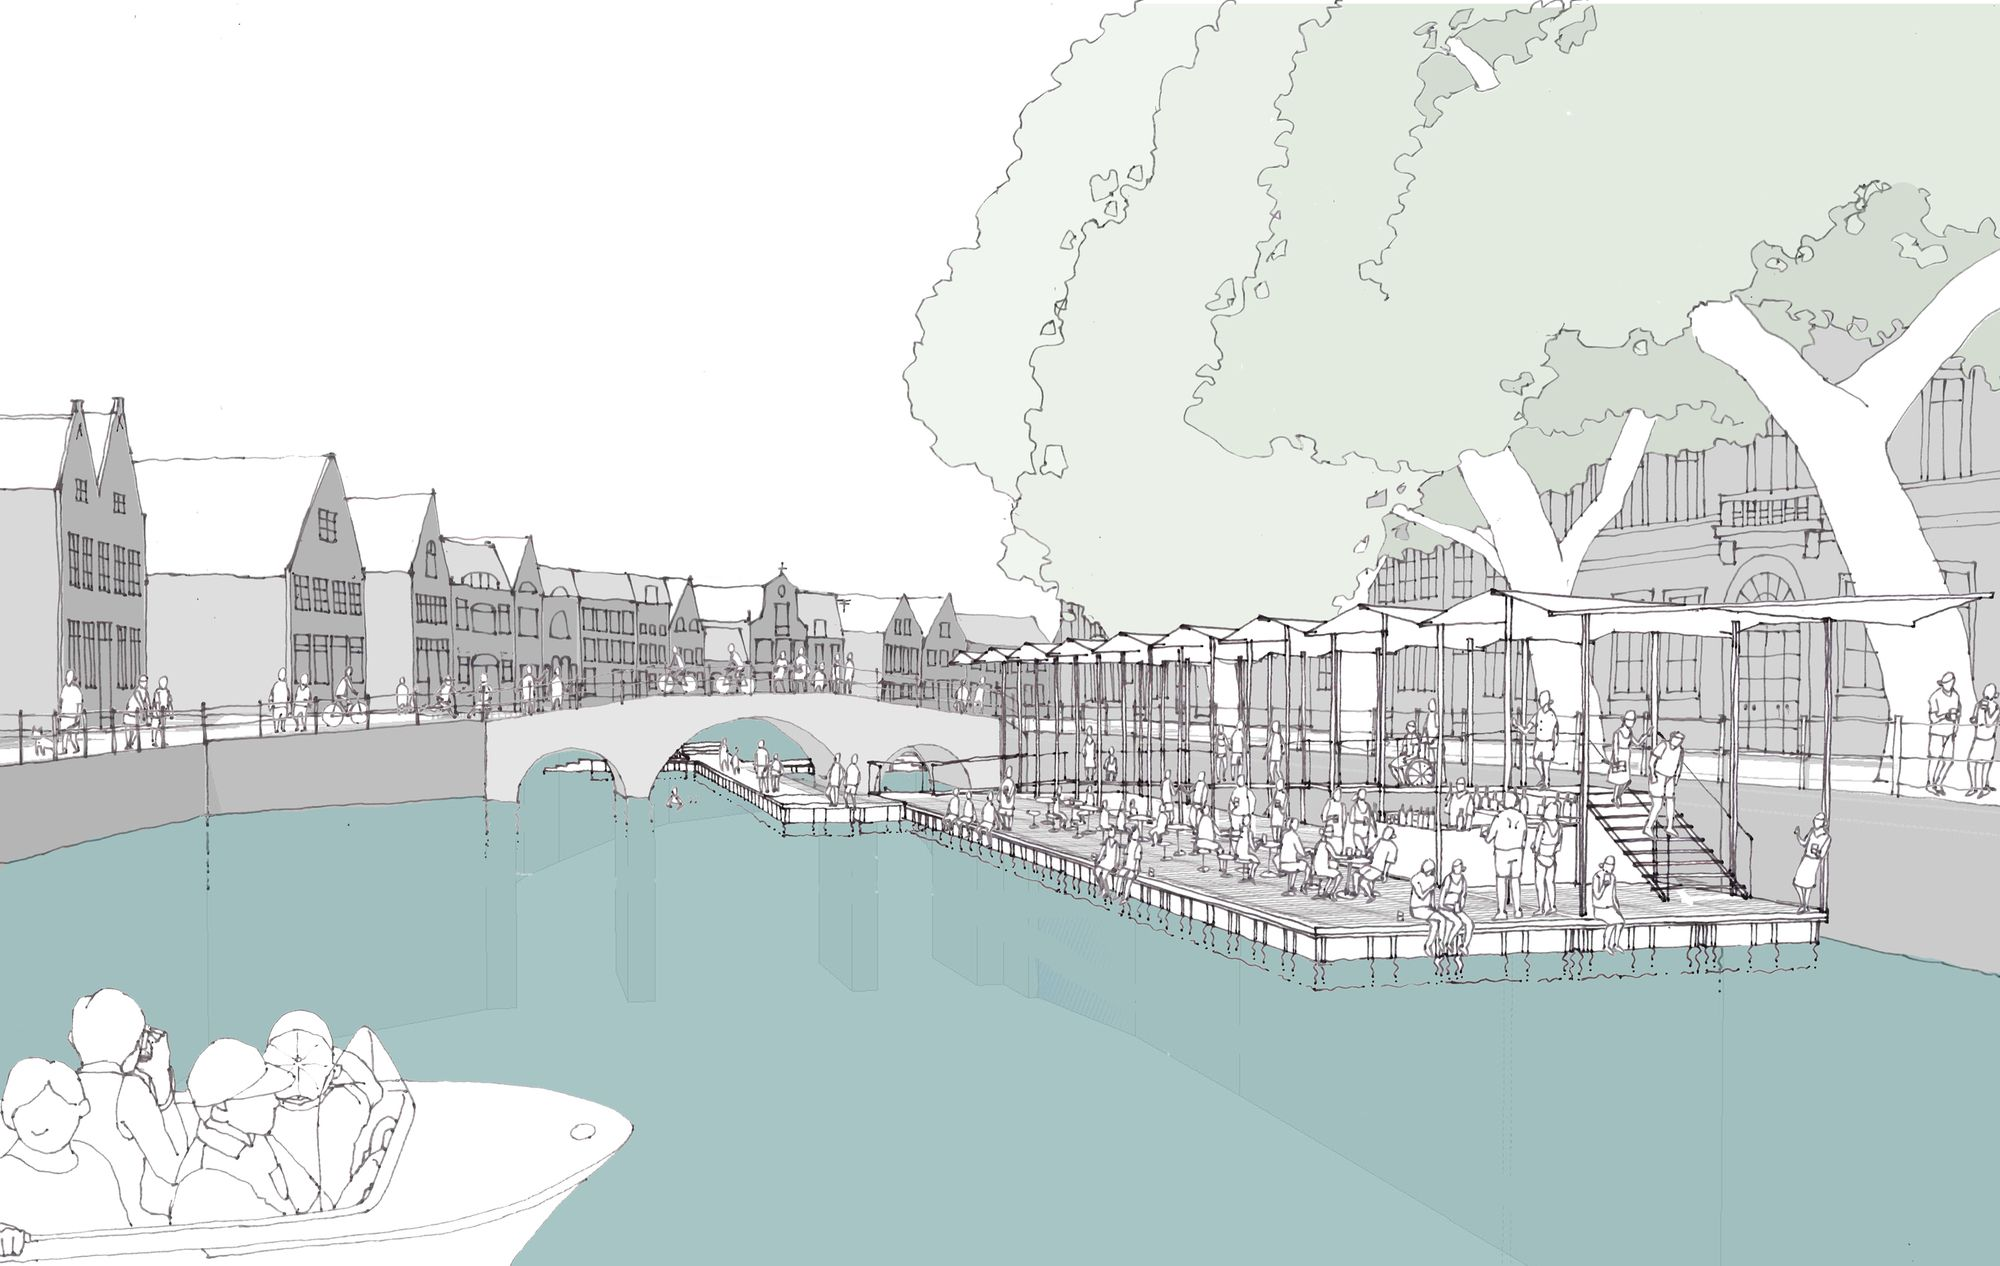 Image 23 of 24 from gallery of Canal Swimmer's Club / Atelier Bow-Wow + Architectuuratelier Dertien 12. Sketch